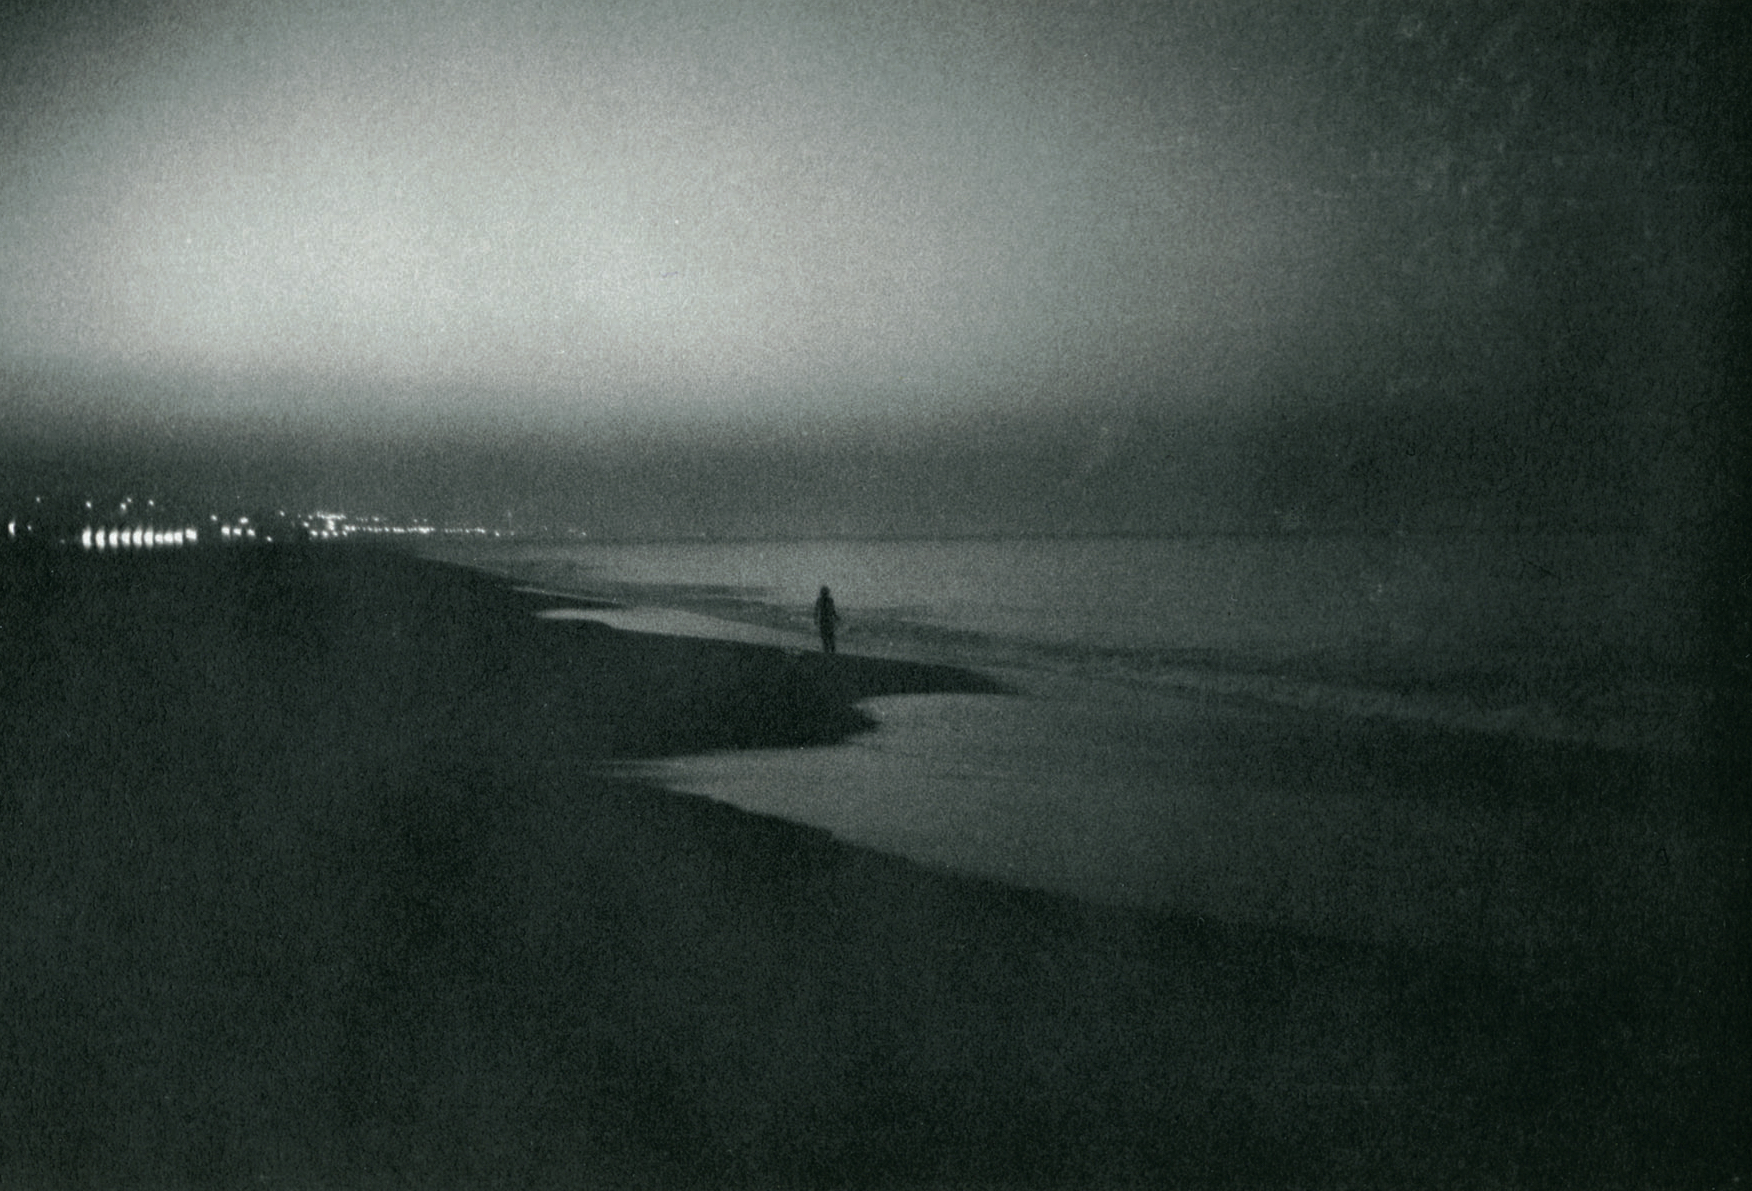 Bas Jan Ader, Studies for In Search of the Miraculous (One Night In LA) #26 (detail), 1973